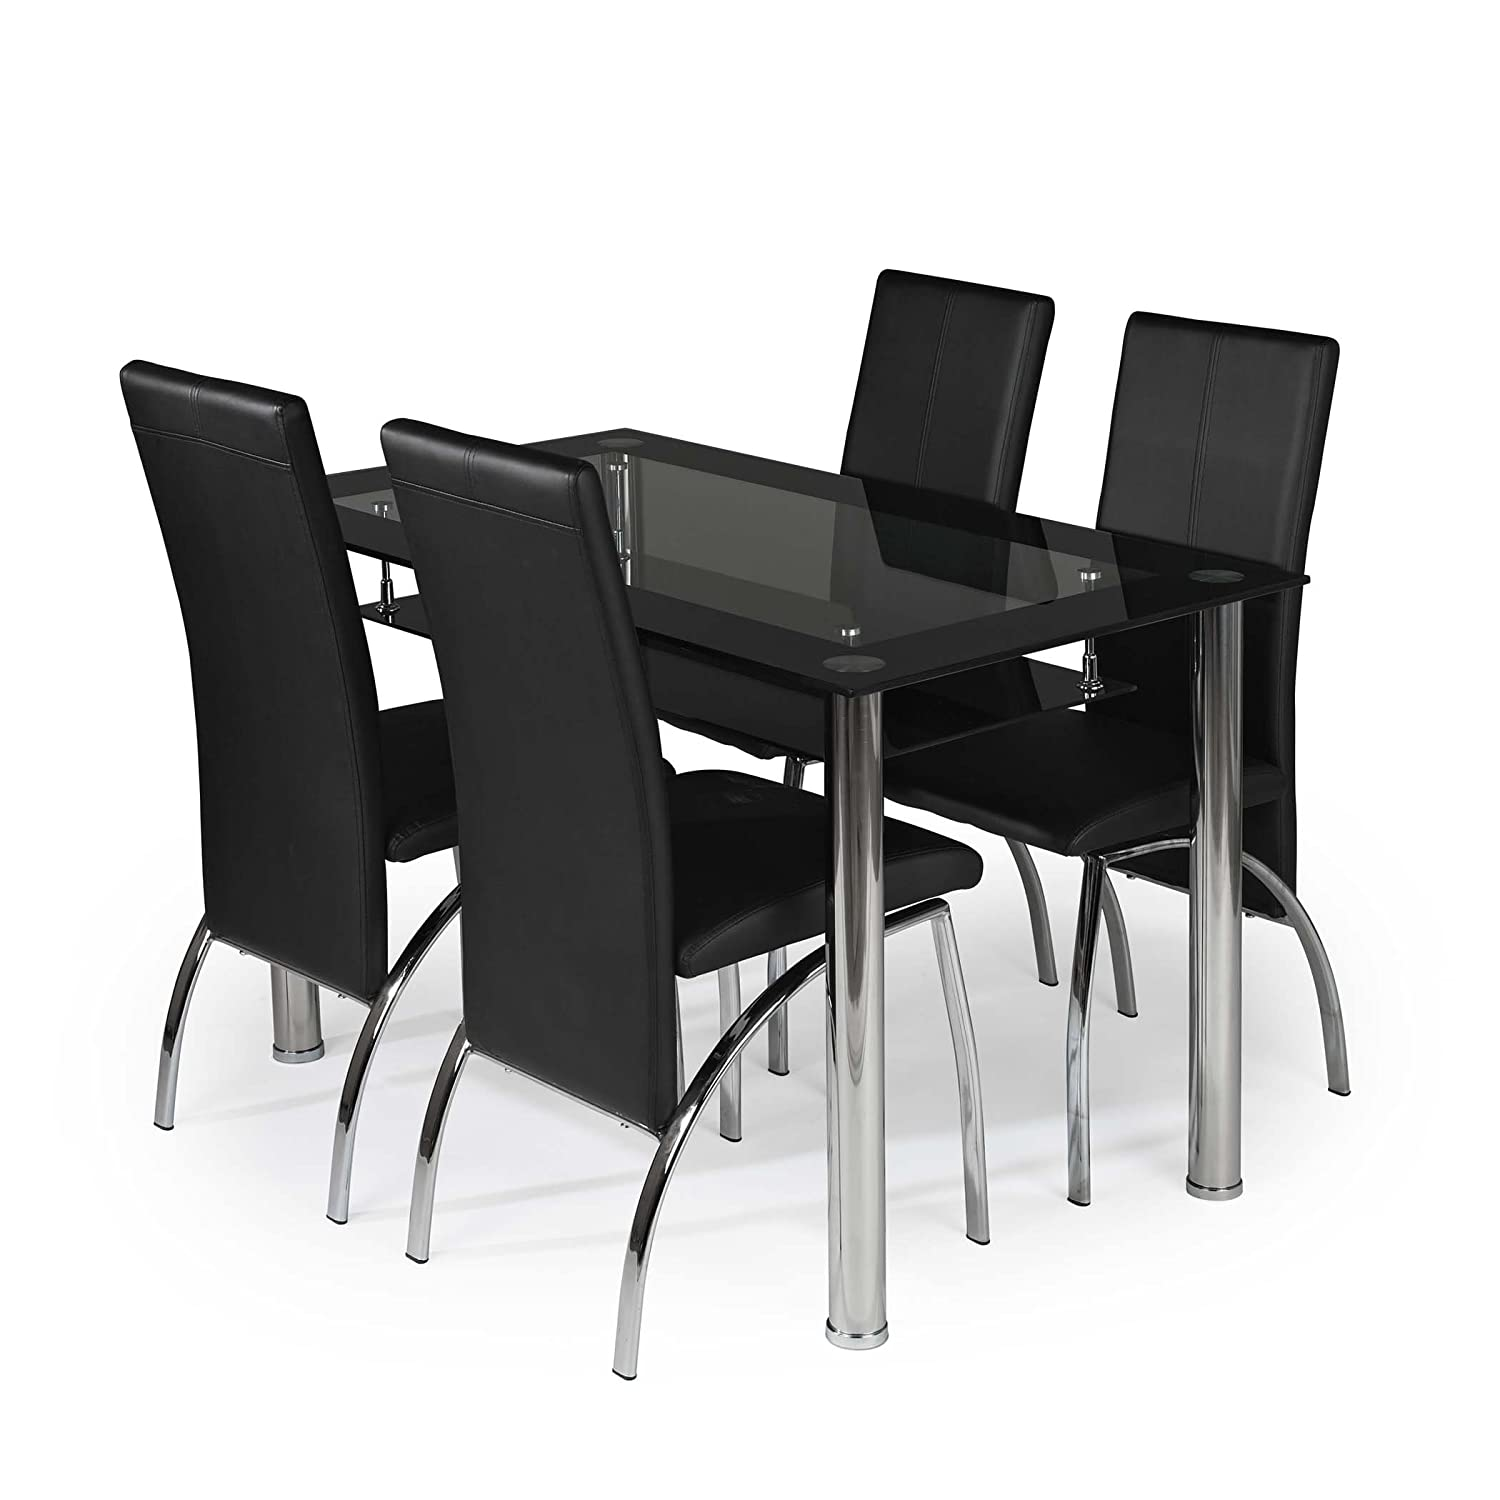 Modernique Black Border Glass Dining Table With Shelf And 4  # Meuble Tv Centrakor